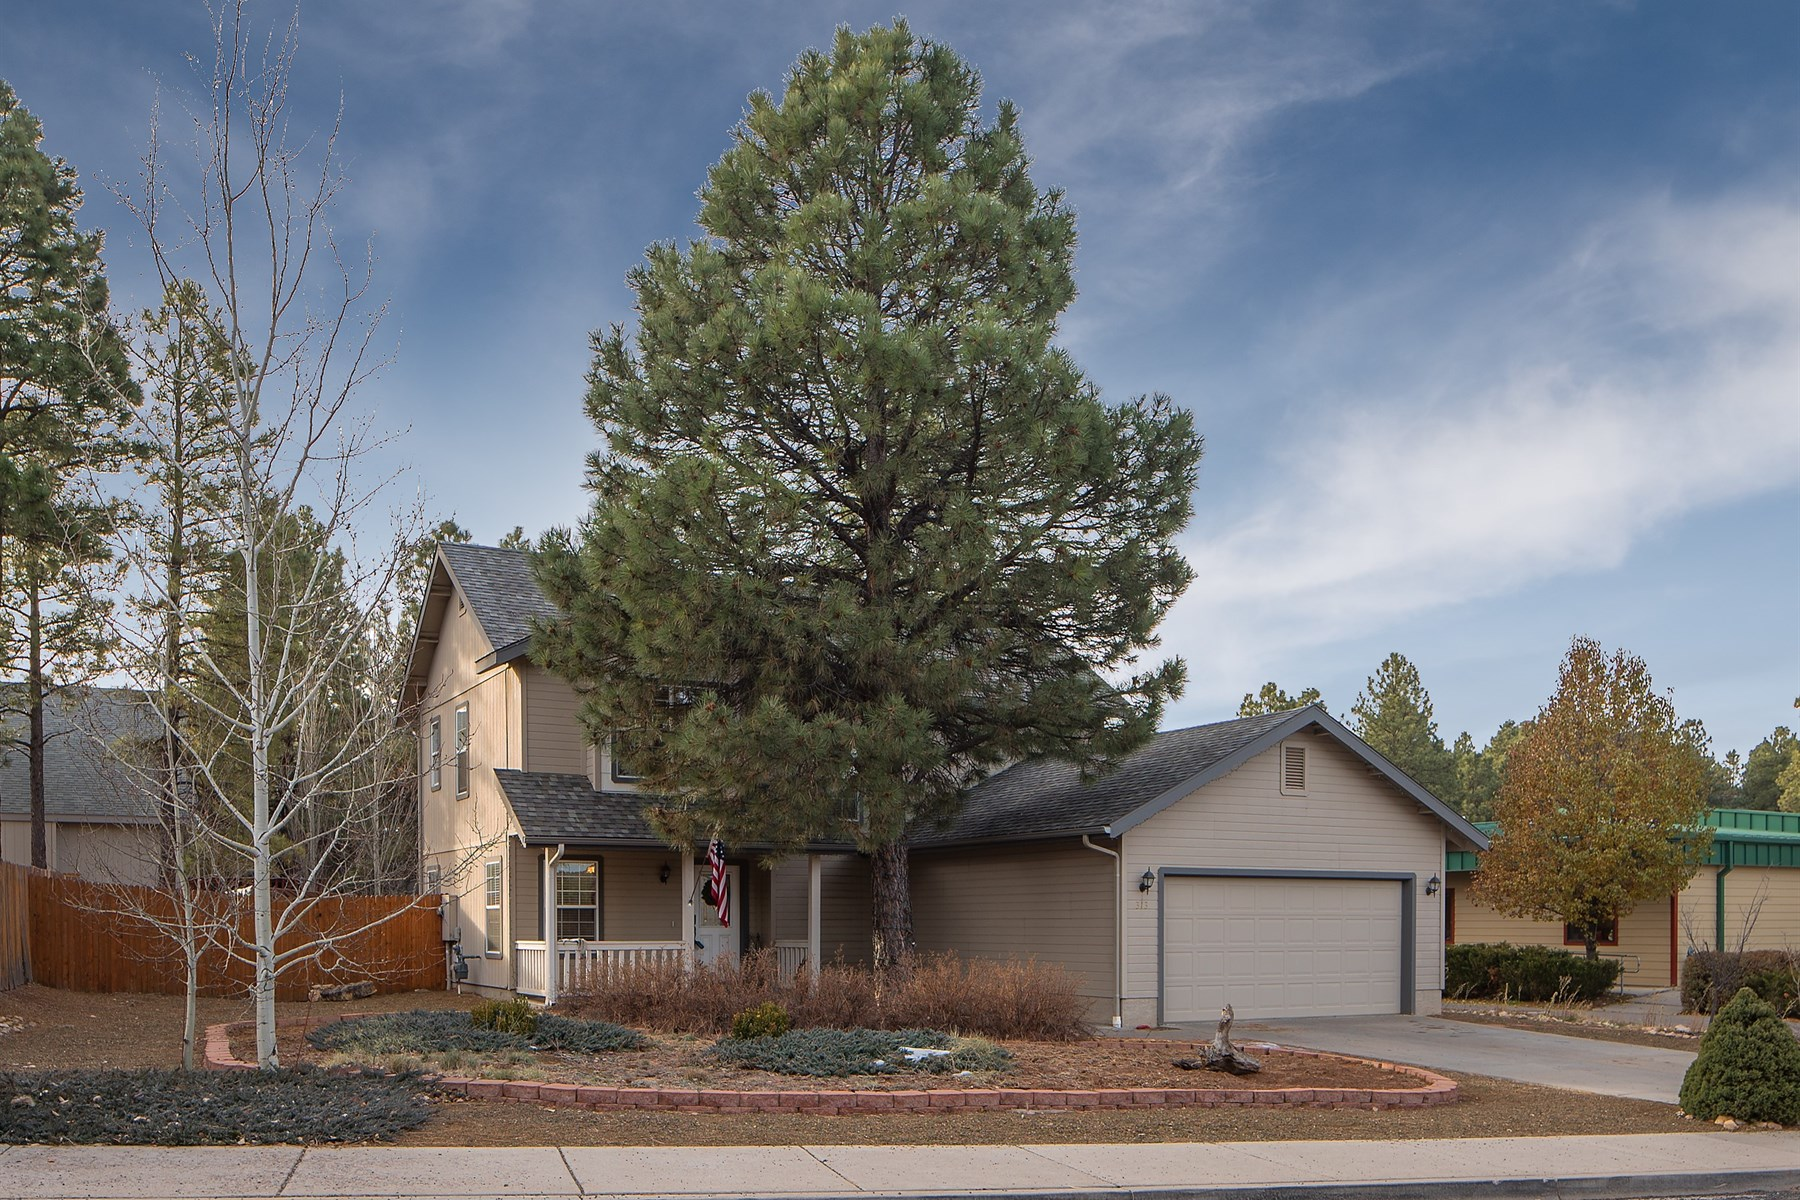 Single Family Home for Sale at One of the best priced homes in Ponderosa Trails 313 W Cattle Drive Trl Flagstaff, Arizona 86005 United States